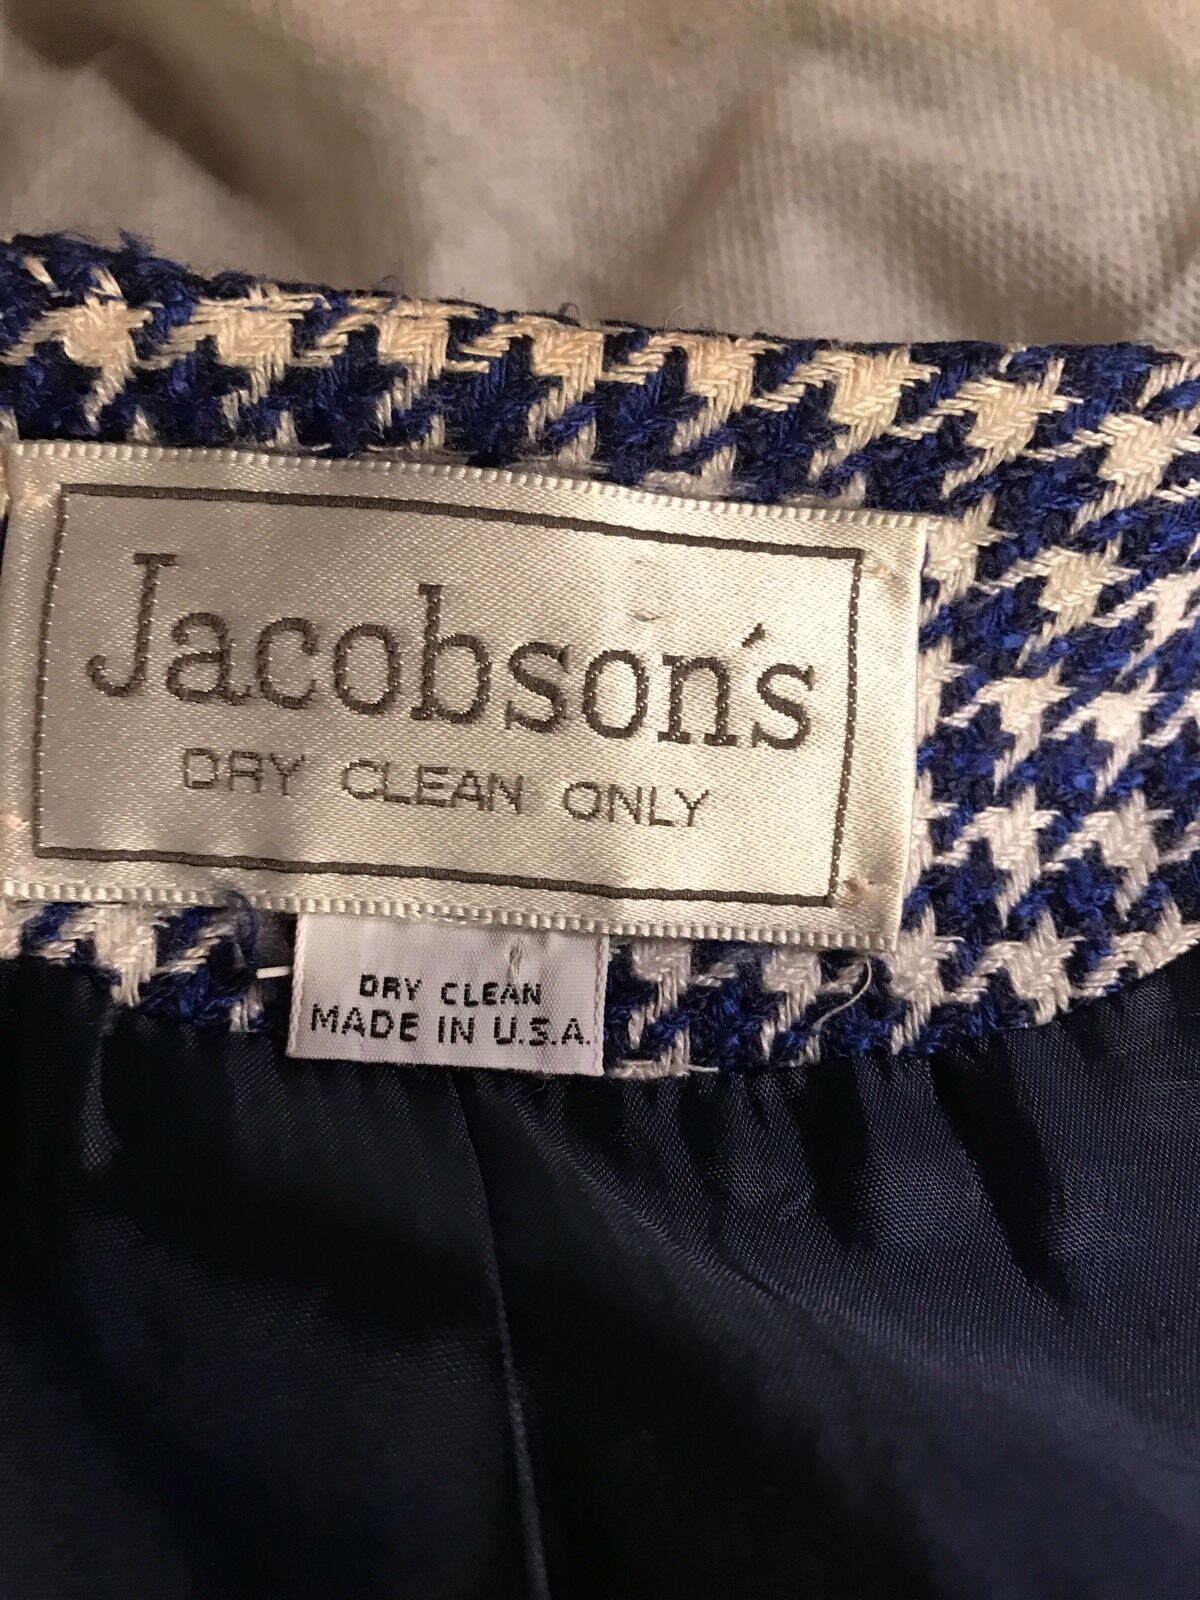 Jacobsons bluee And White Blazer Fits Like A A A Large Or Extra Large 0d11af